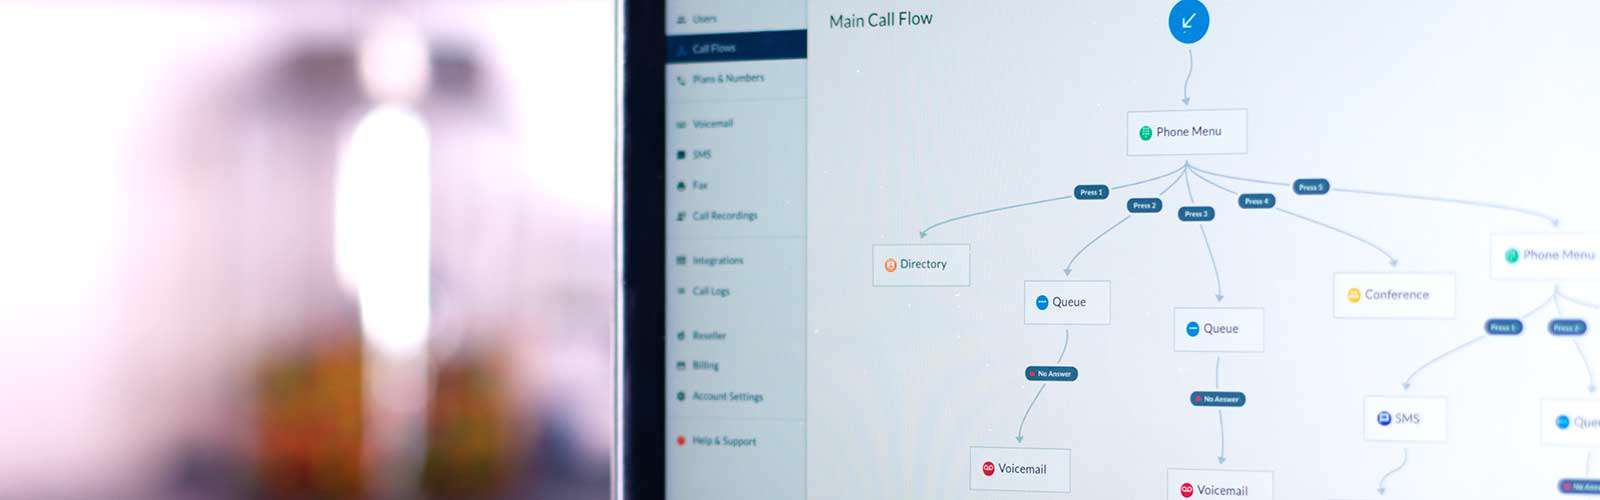 How to Set up VoIP for a Small Business